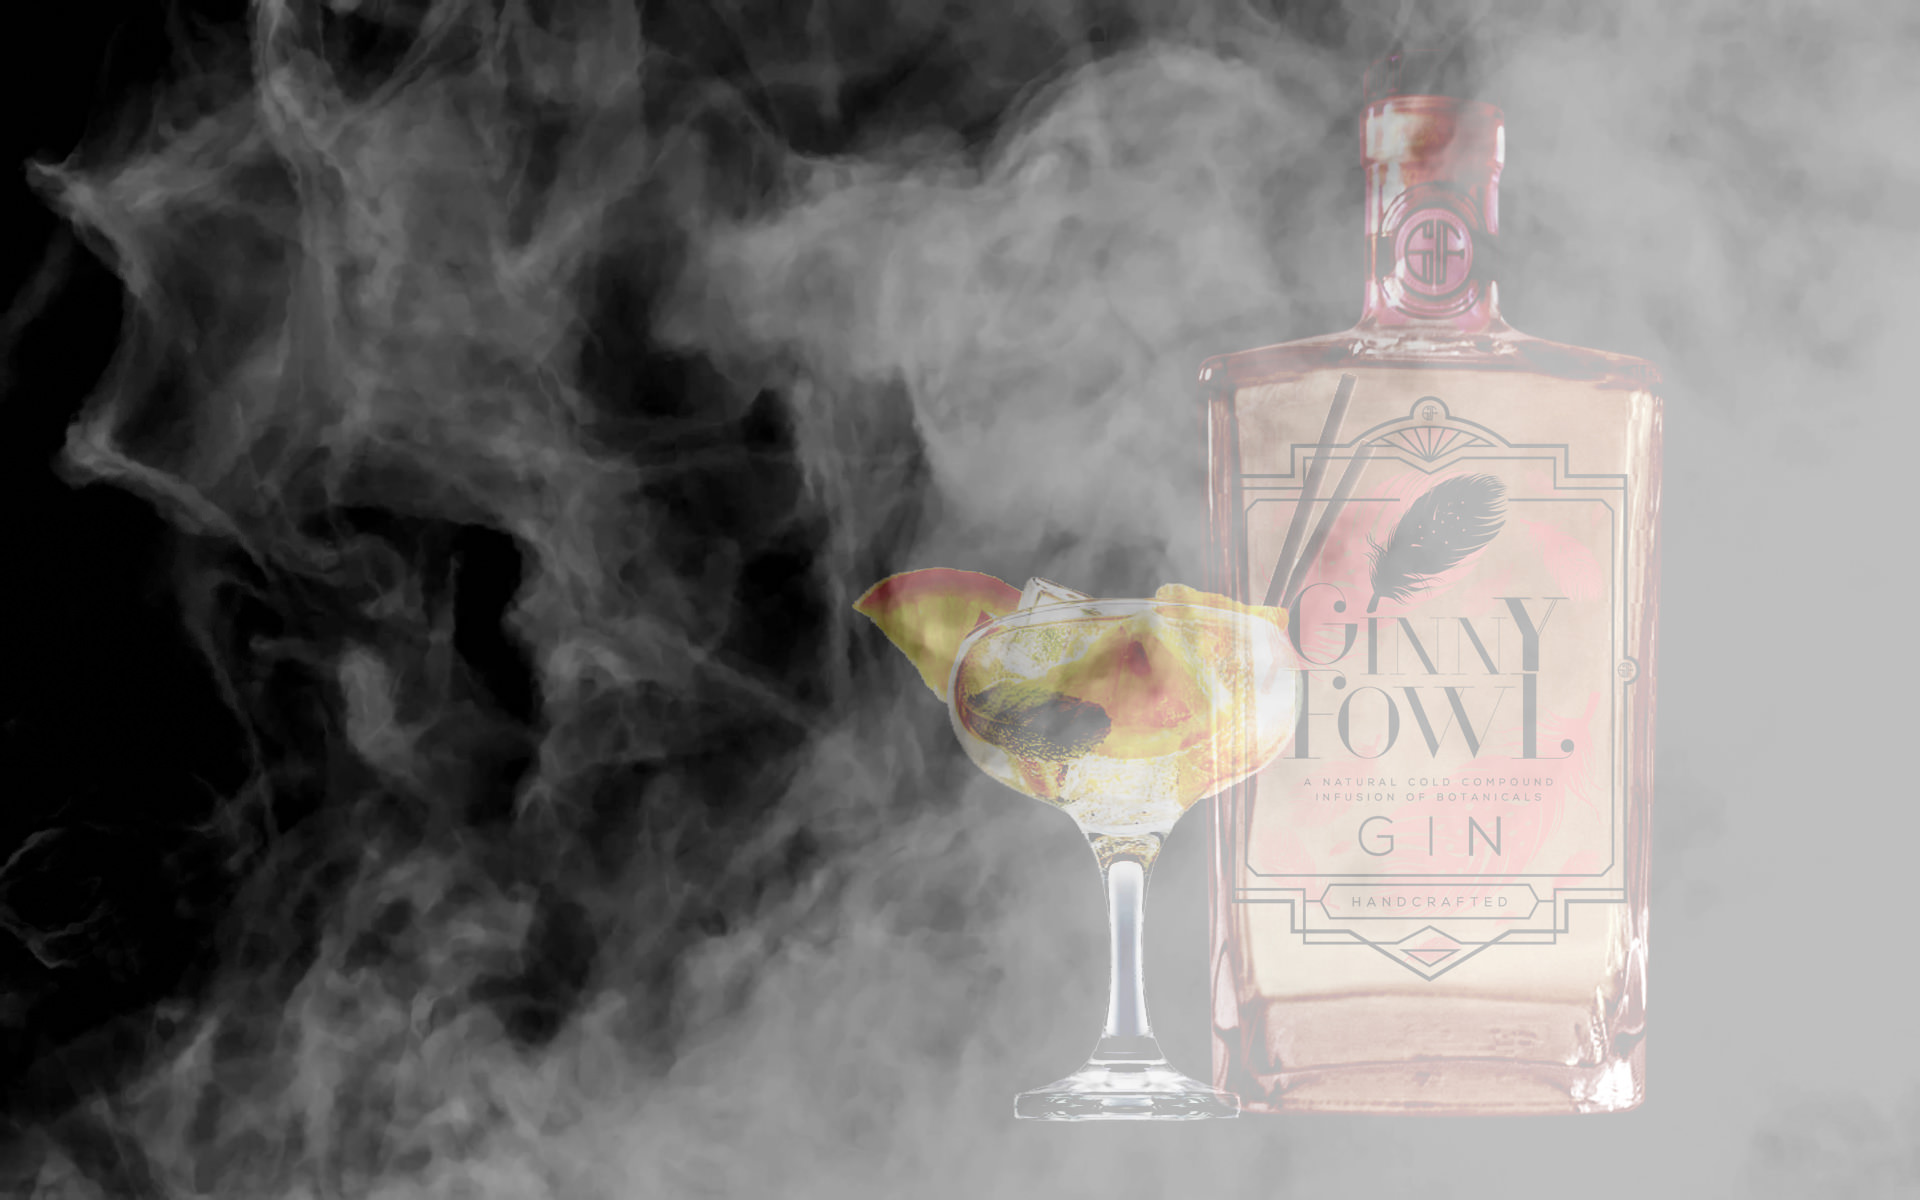 Ginny Fowl Hibiscus and Naartjie Gin